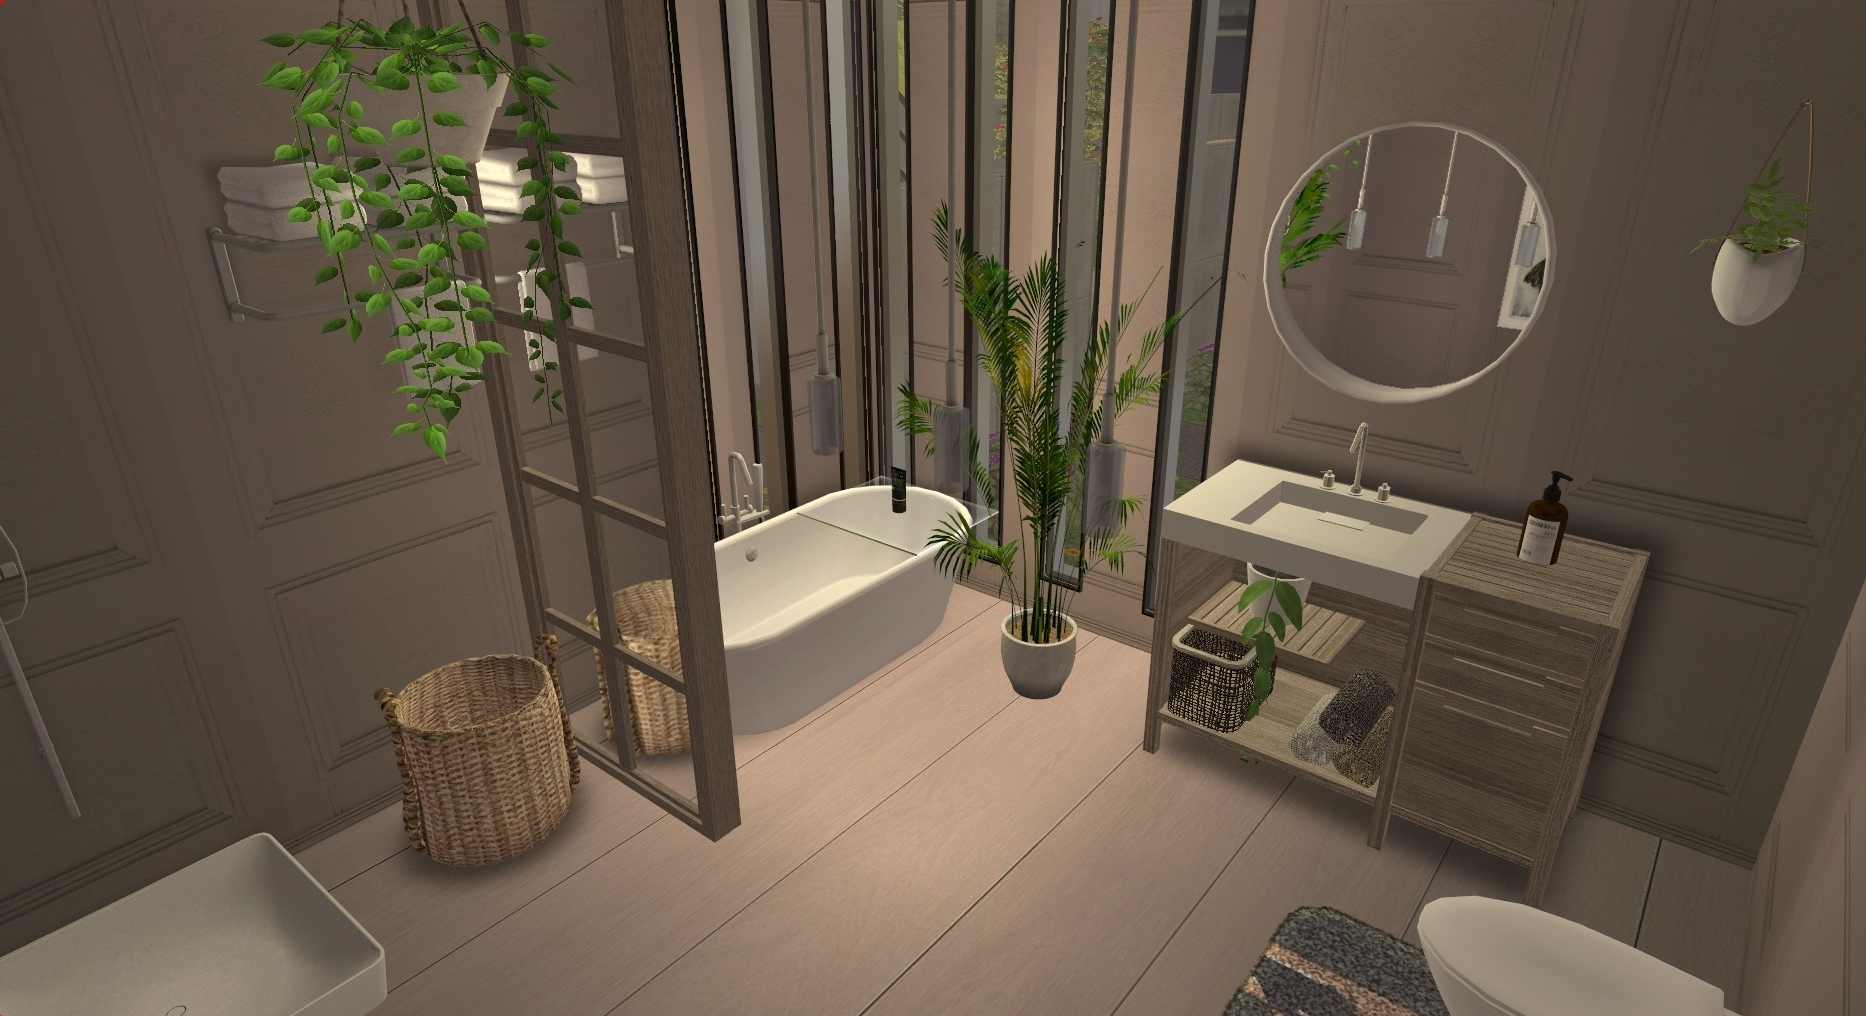 I'Ve Made My Sims' Junk/Craft Room Into An Appealing 10+ Sims 2 Bathroom Inspirations